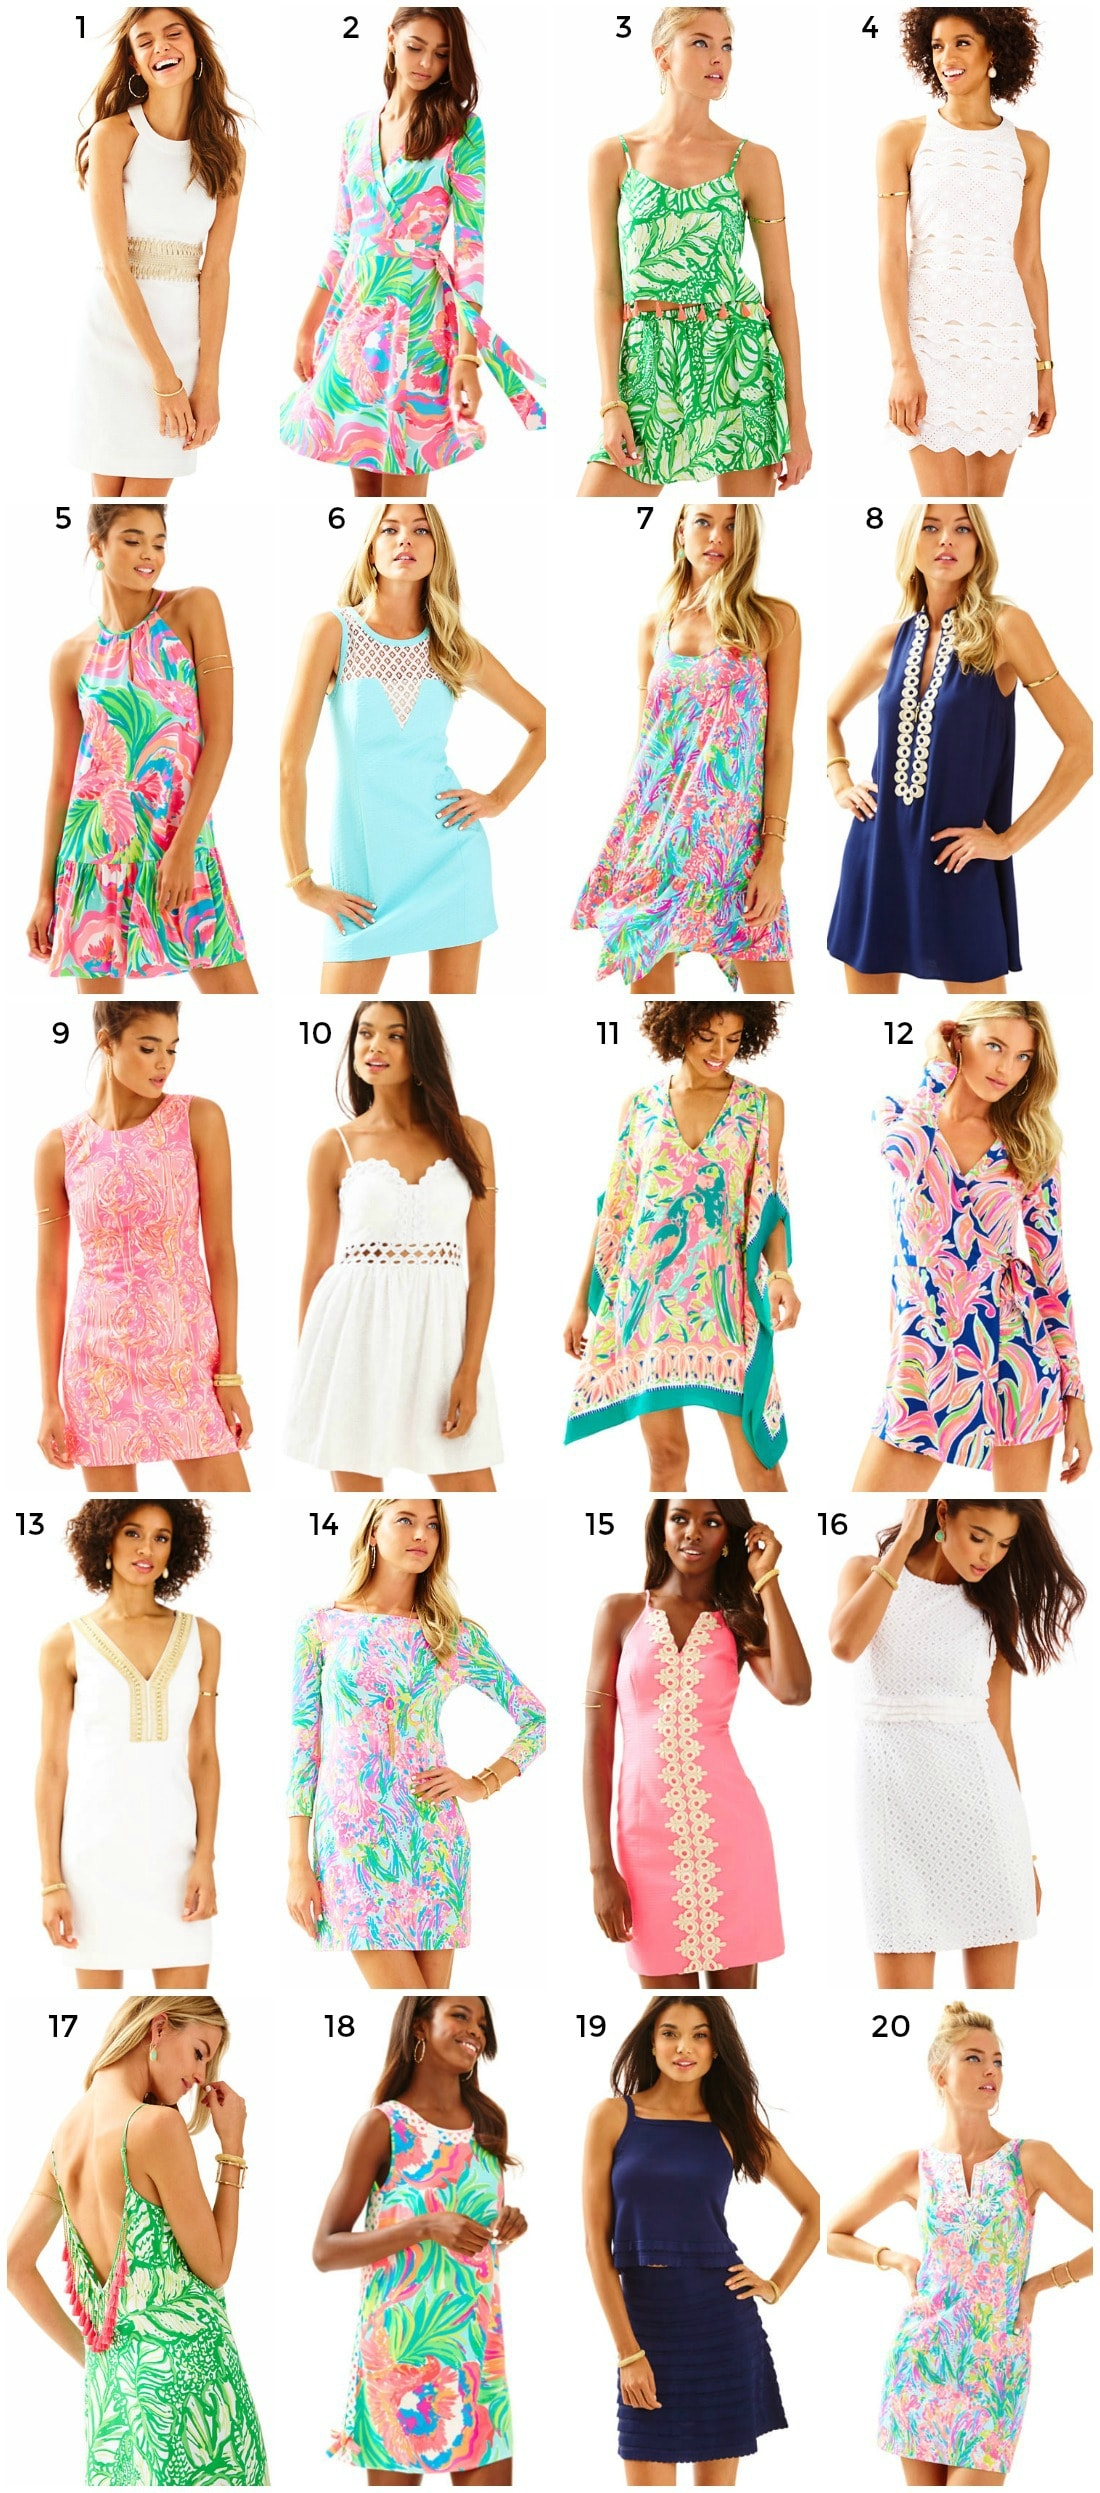 Lilly Pulitzer Spring Collection + New Arrivals + Cutest Lilly Pulitzer Dresses | Florida Style Blogger Ashley Brooke Nicholas